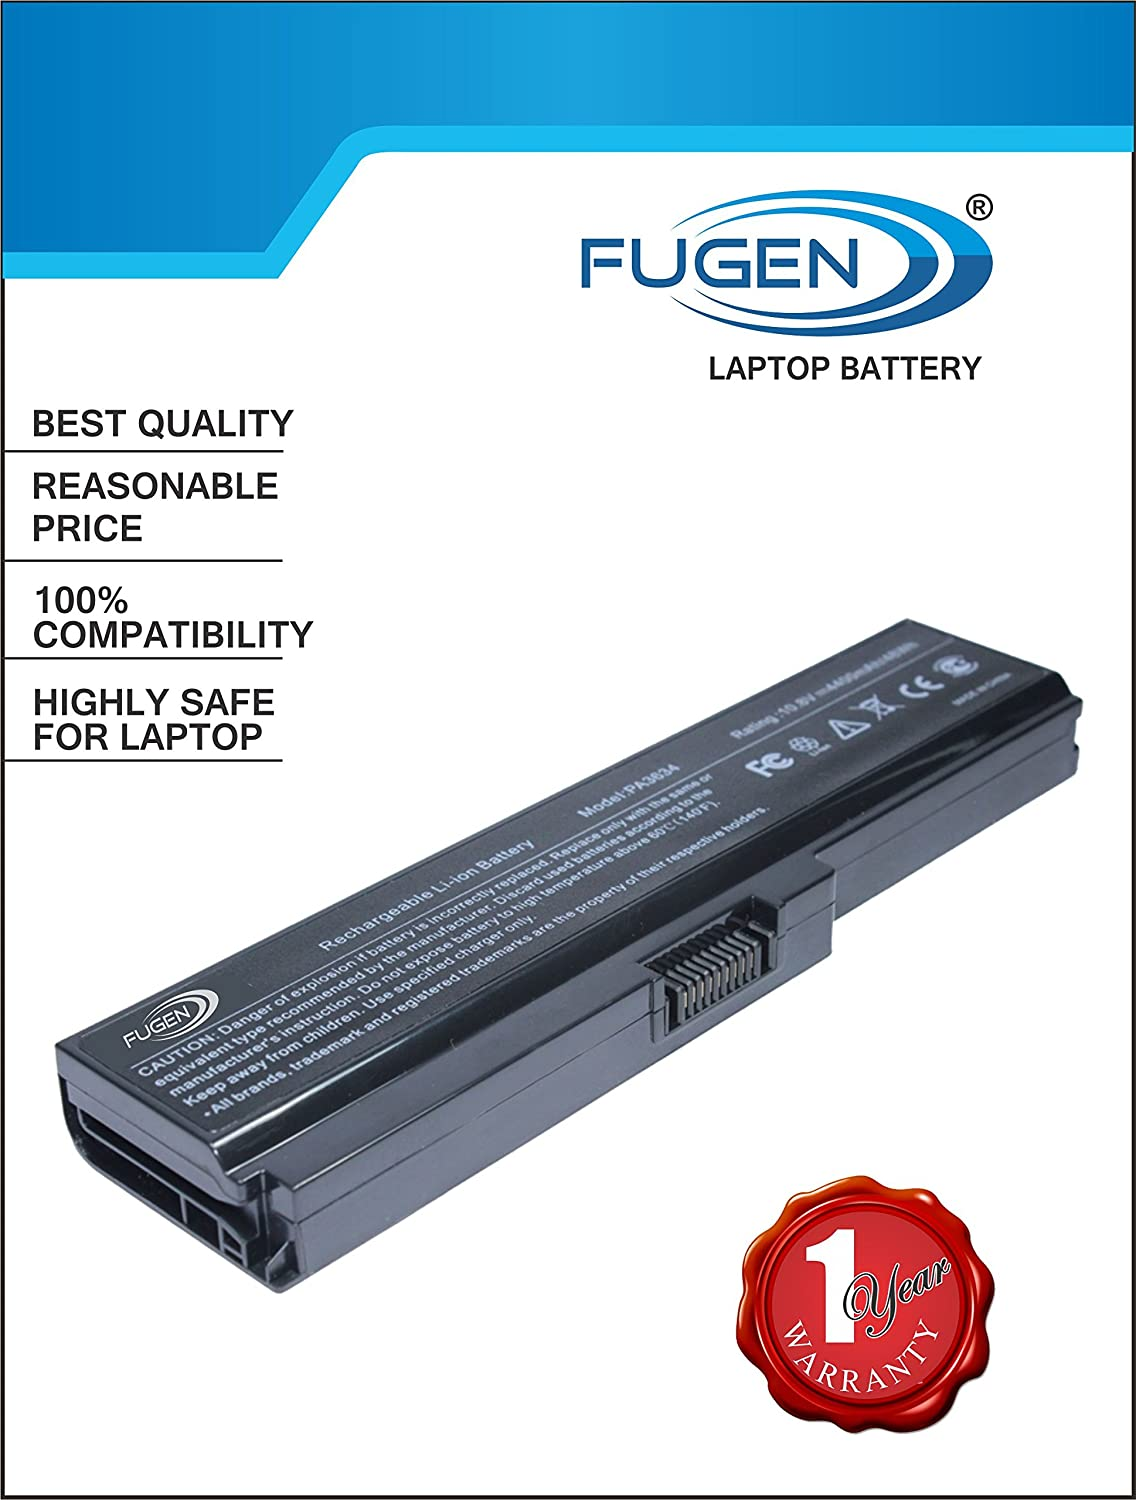 Buy Fugen Laptop Battery 6 Cell For Toshiba Satellite Keyboard Satelite L735 L745 C600 C640 C645 L600 L645 L630 L635 C650 C655 C675 L640 L650 L655 L670 L675 Pa3634u 1brs